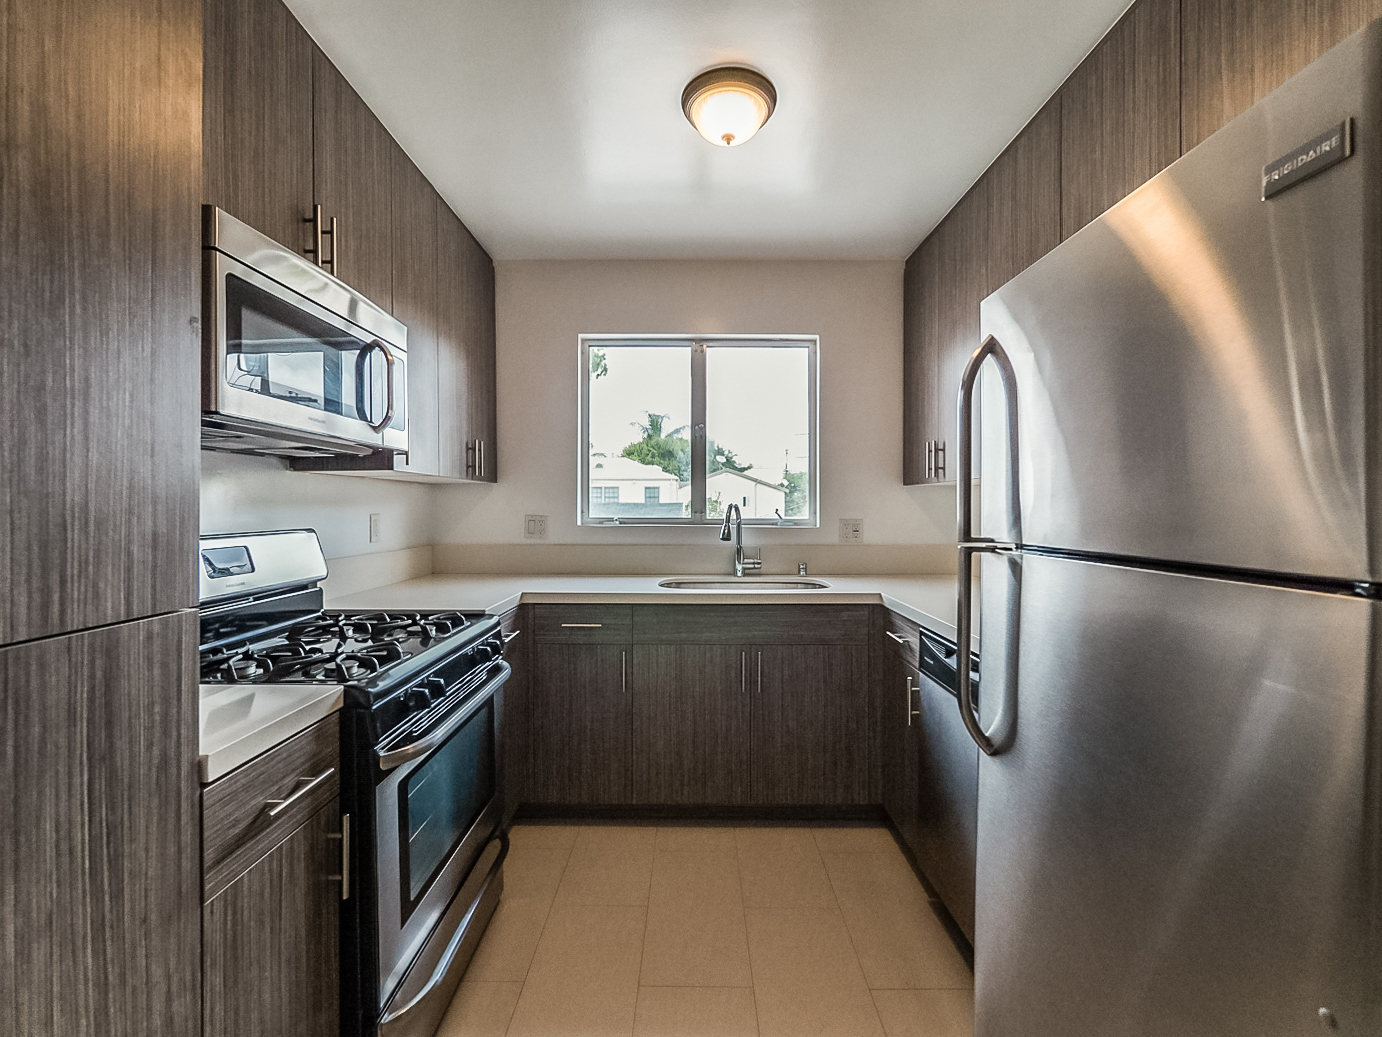 Sleek and Chic! Sharply Renovated, Super Spacious 1 Bed- Real Hardwoods-Stainless Appliances-Parking